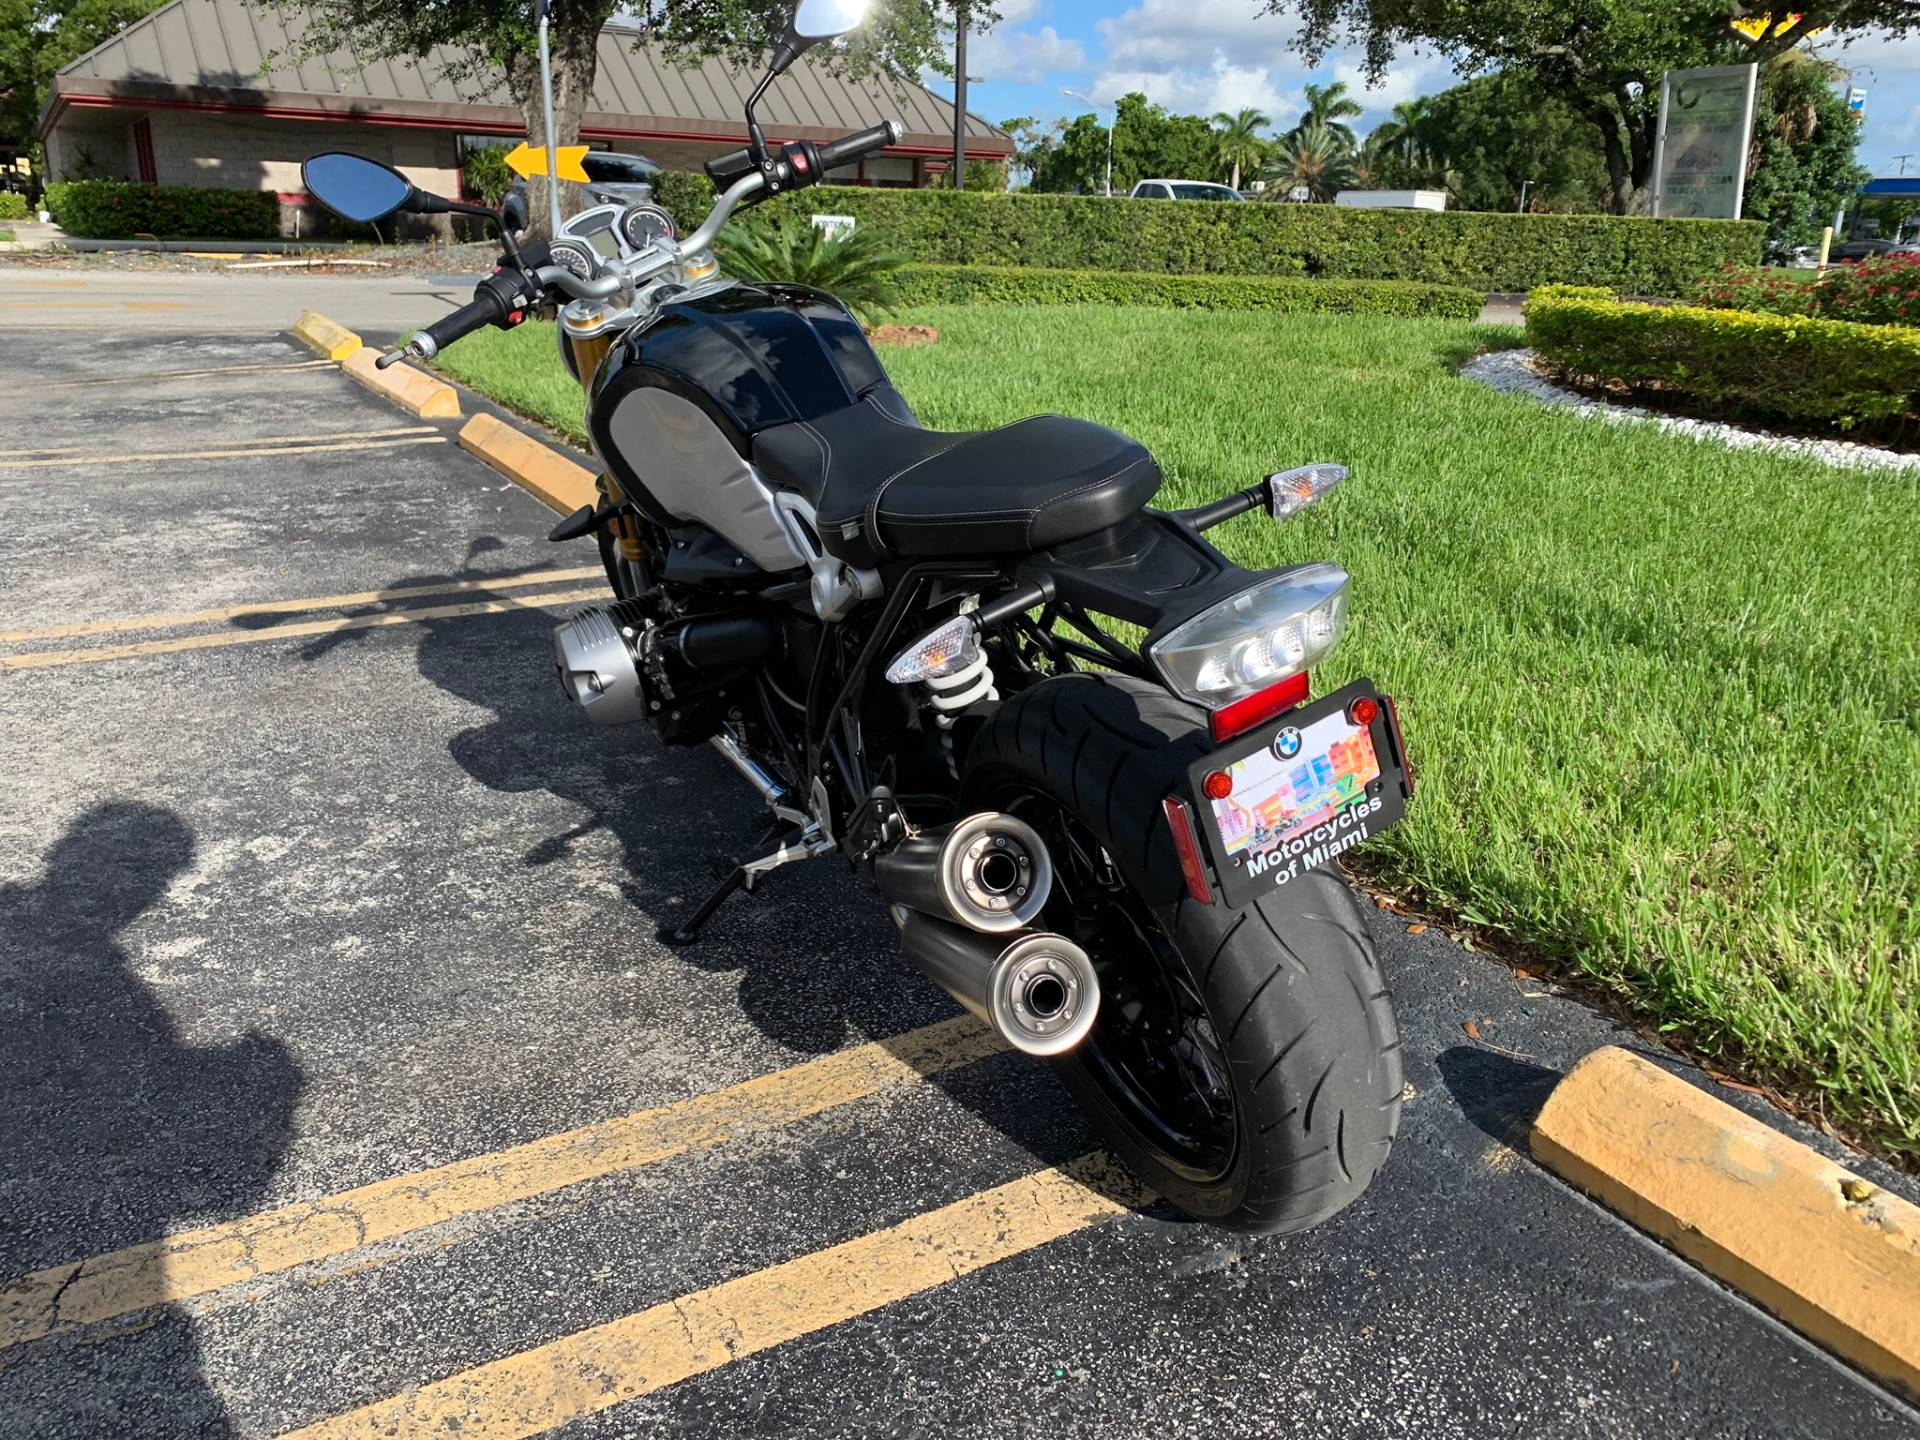 Used 2016 BMW R NineT for sale, BMW for sale, BMW Motorcycle Café Racer, new BMW Caffe, Cafe Racer, BMW. BMW Motorcycles of Miami, Motorcycles of Miami, Motorcycles Miami, New Motorcycles, Used Motorcycles, pre-owned. #BMWMotorcyclesOfMiami #MotorcyclesOfMiami. - Photo 15